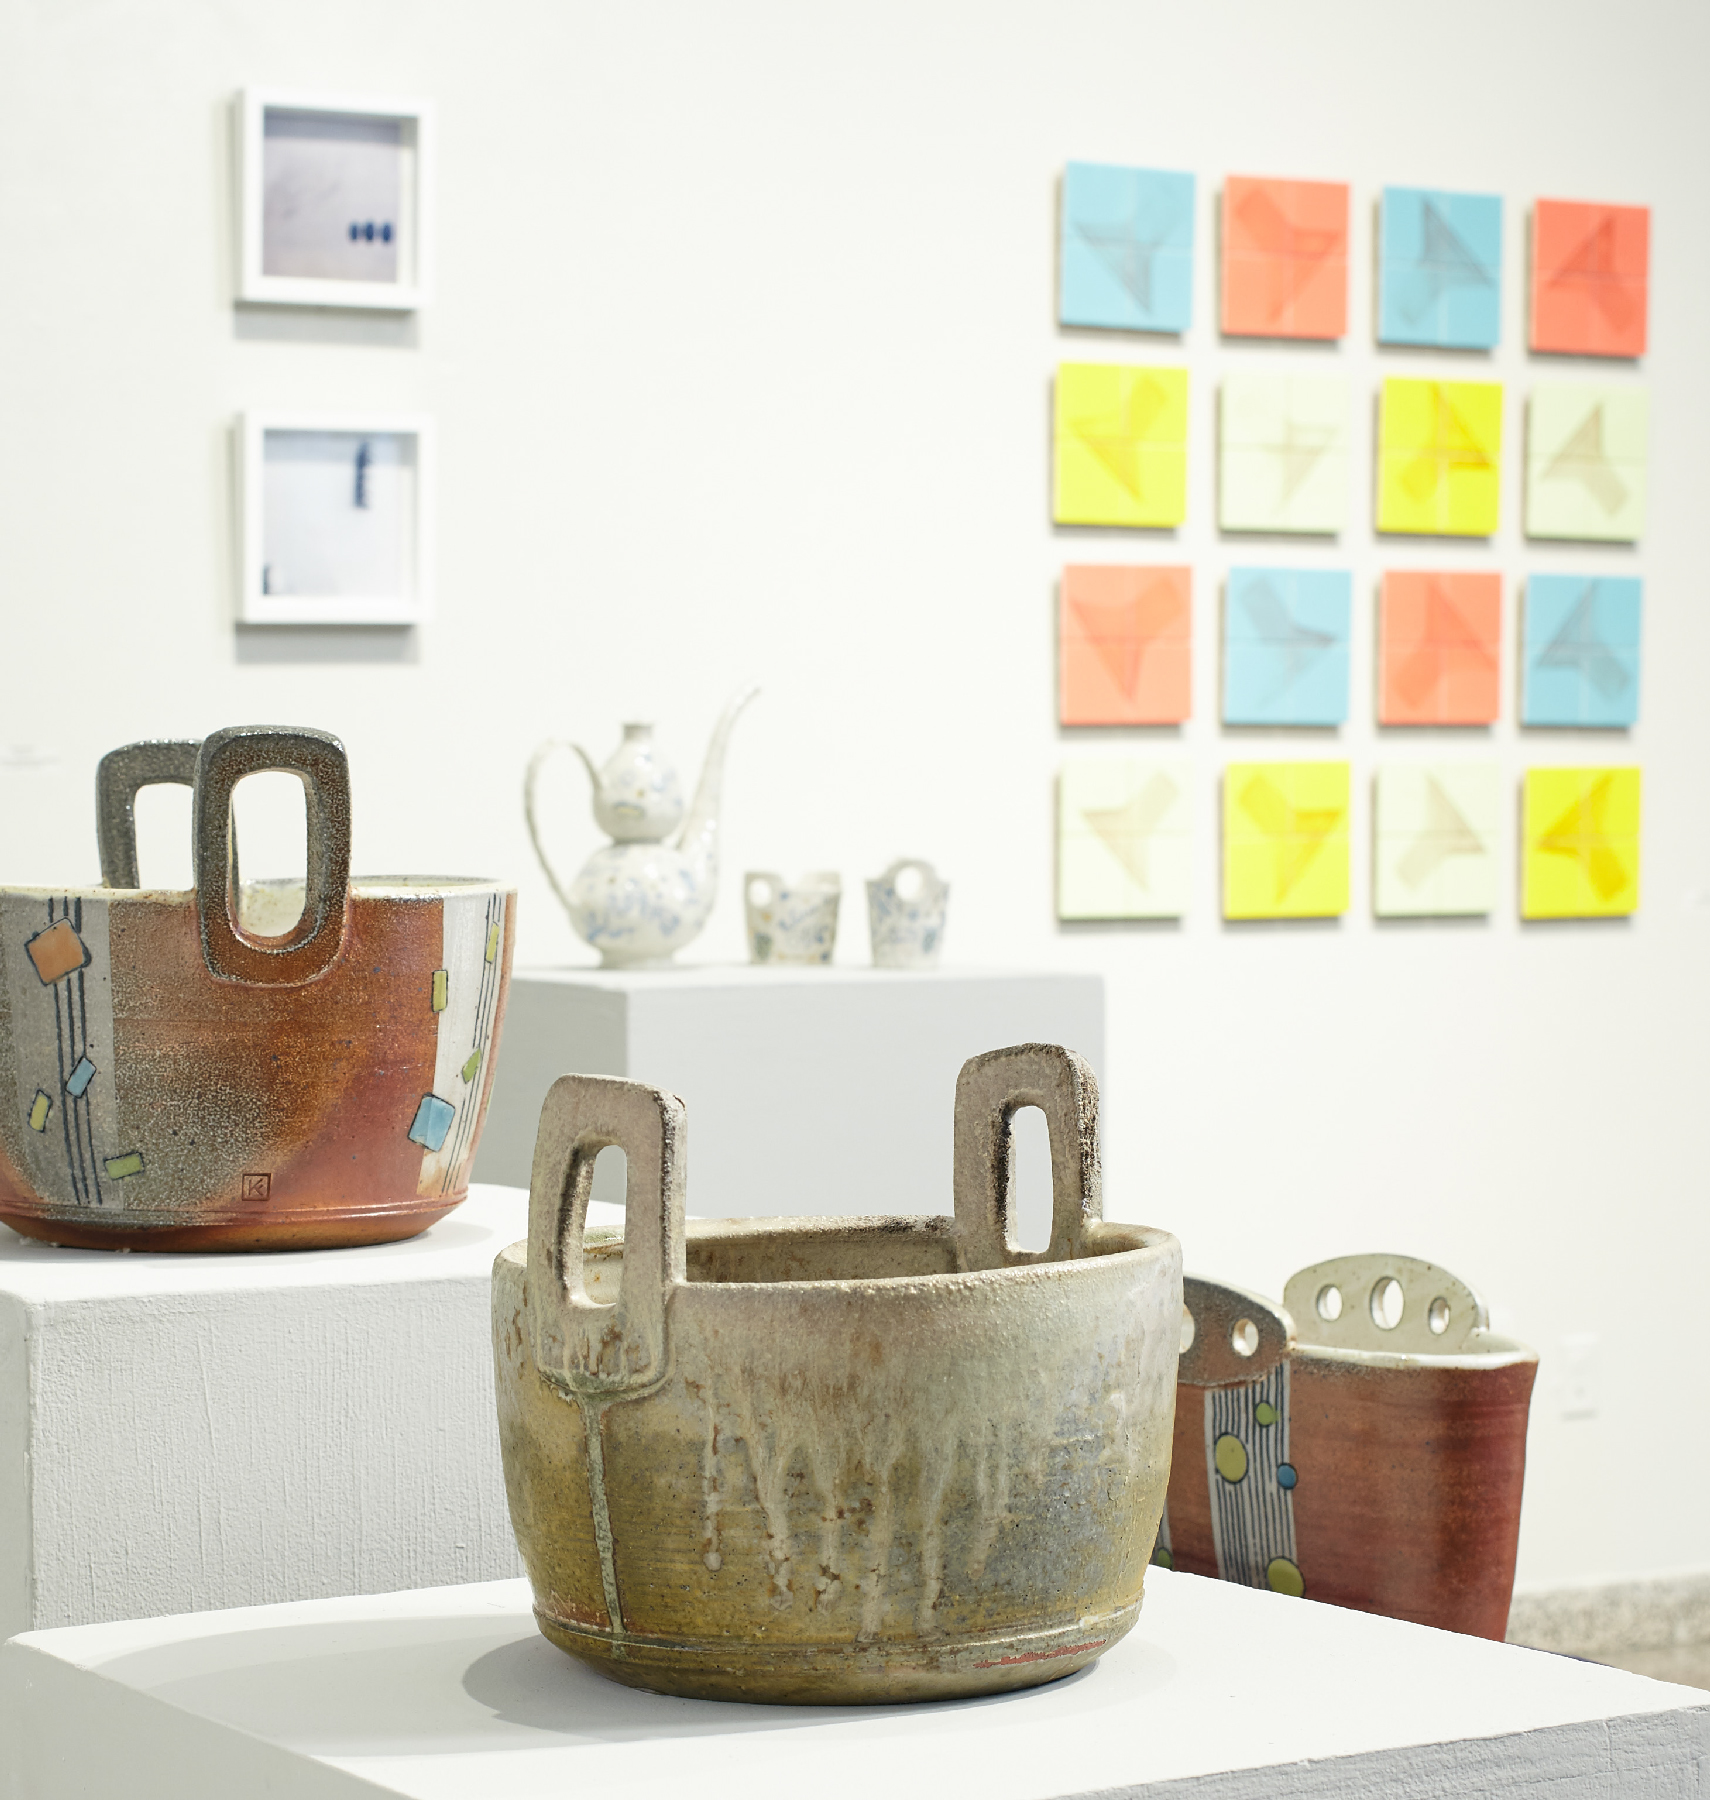 Crowns: An Exhibition of Ceramic Works